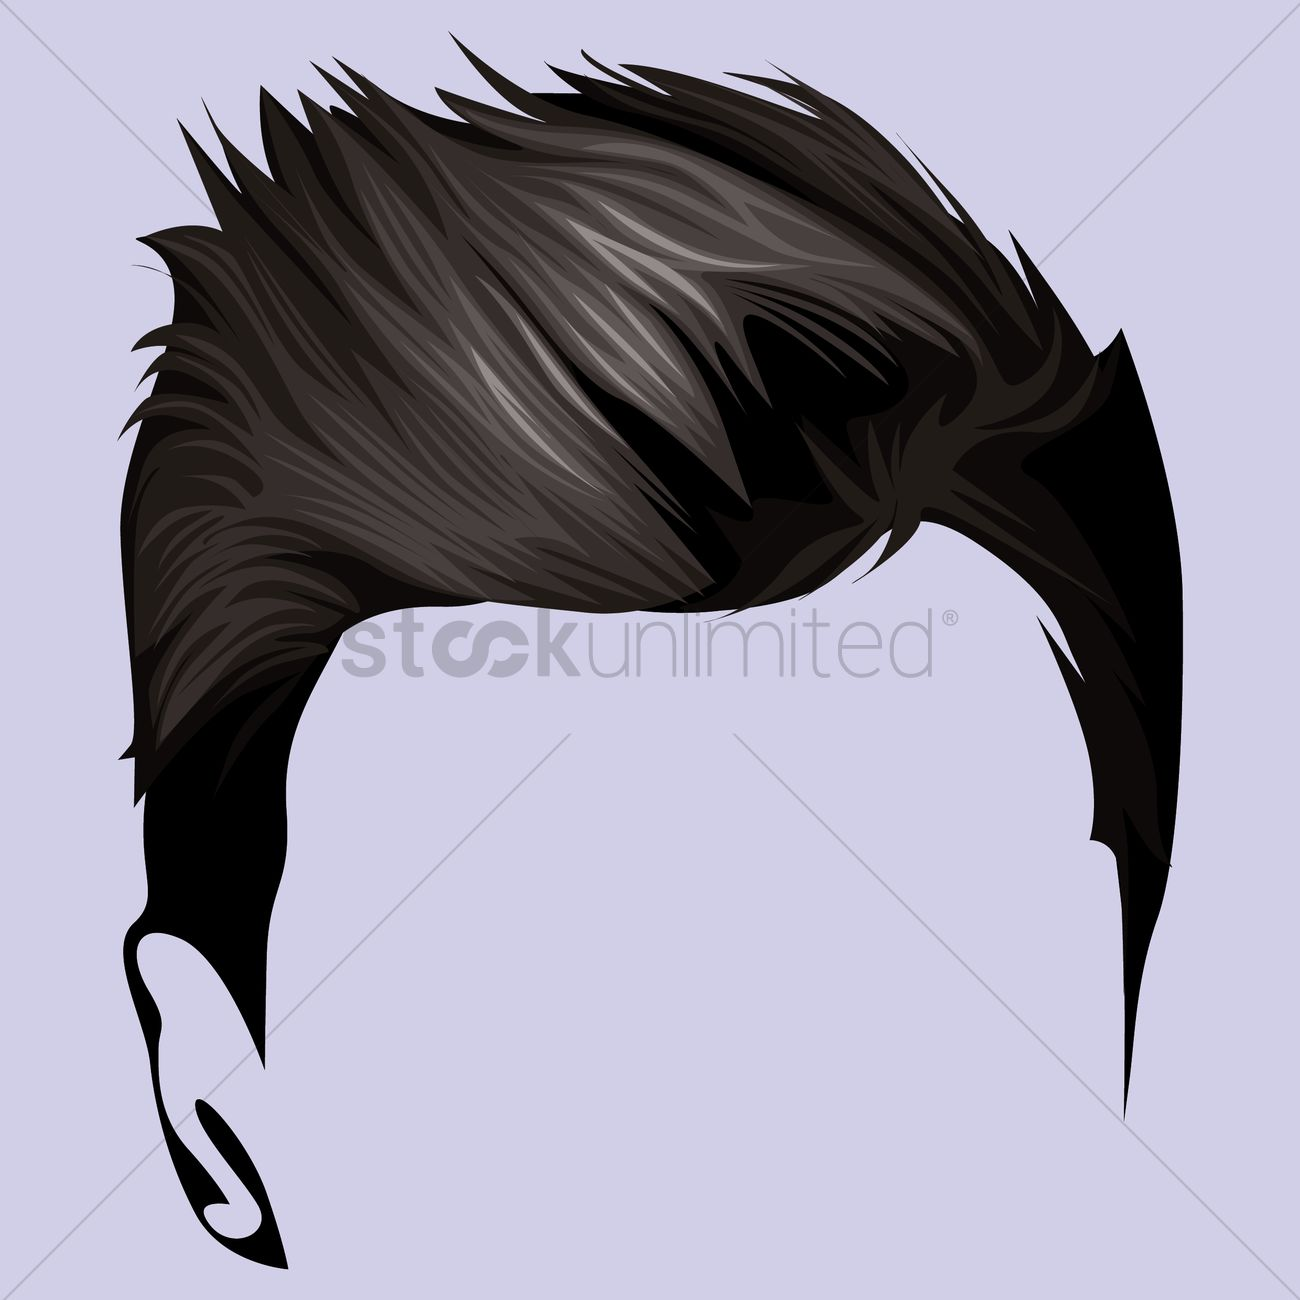 Hair style Vector Image - 1459700 | StockUnlimited